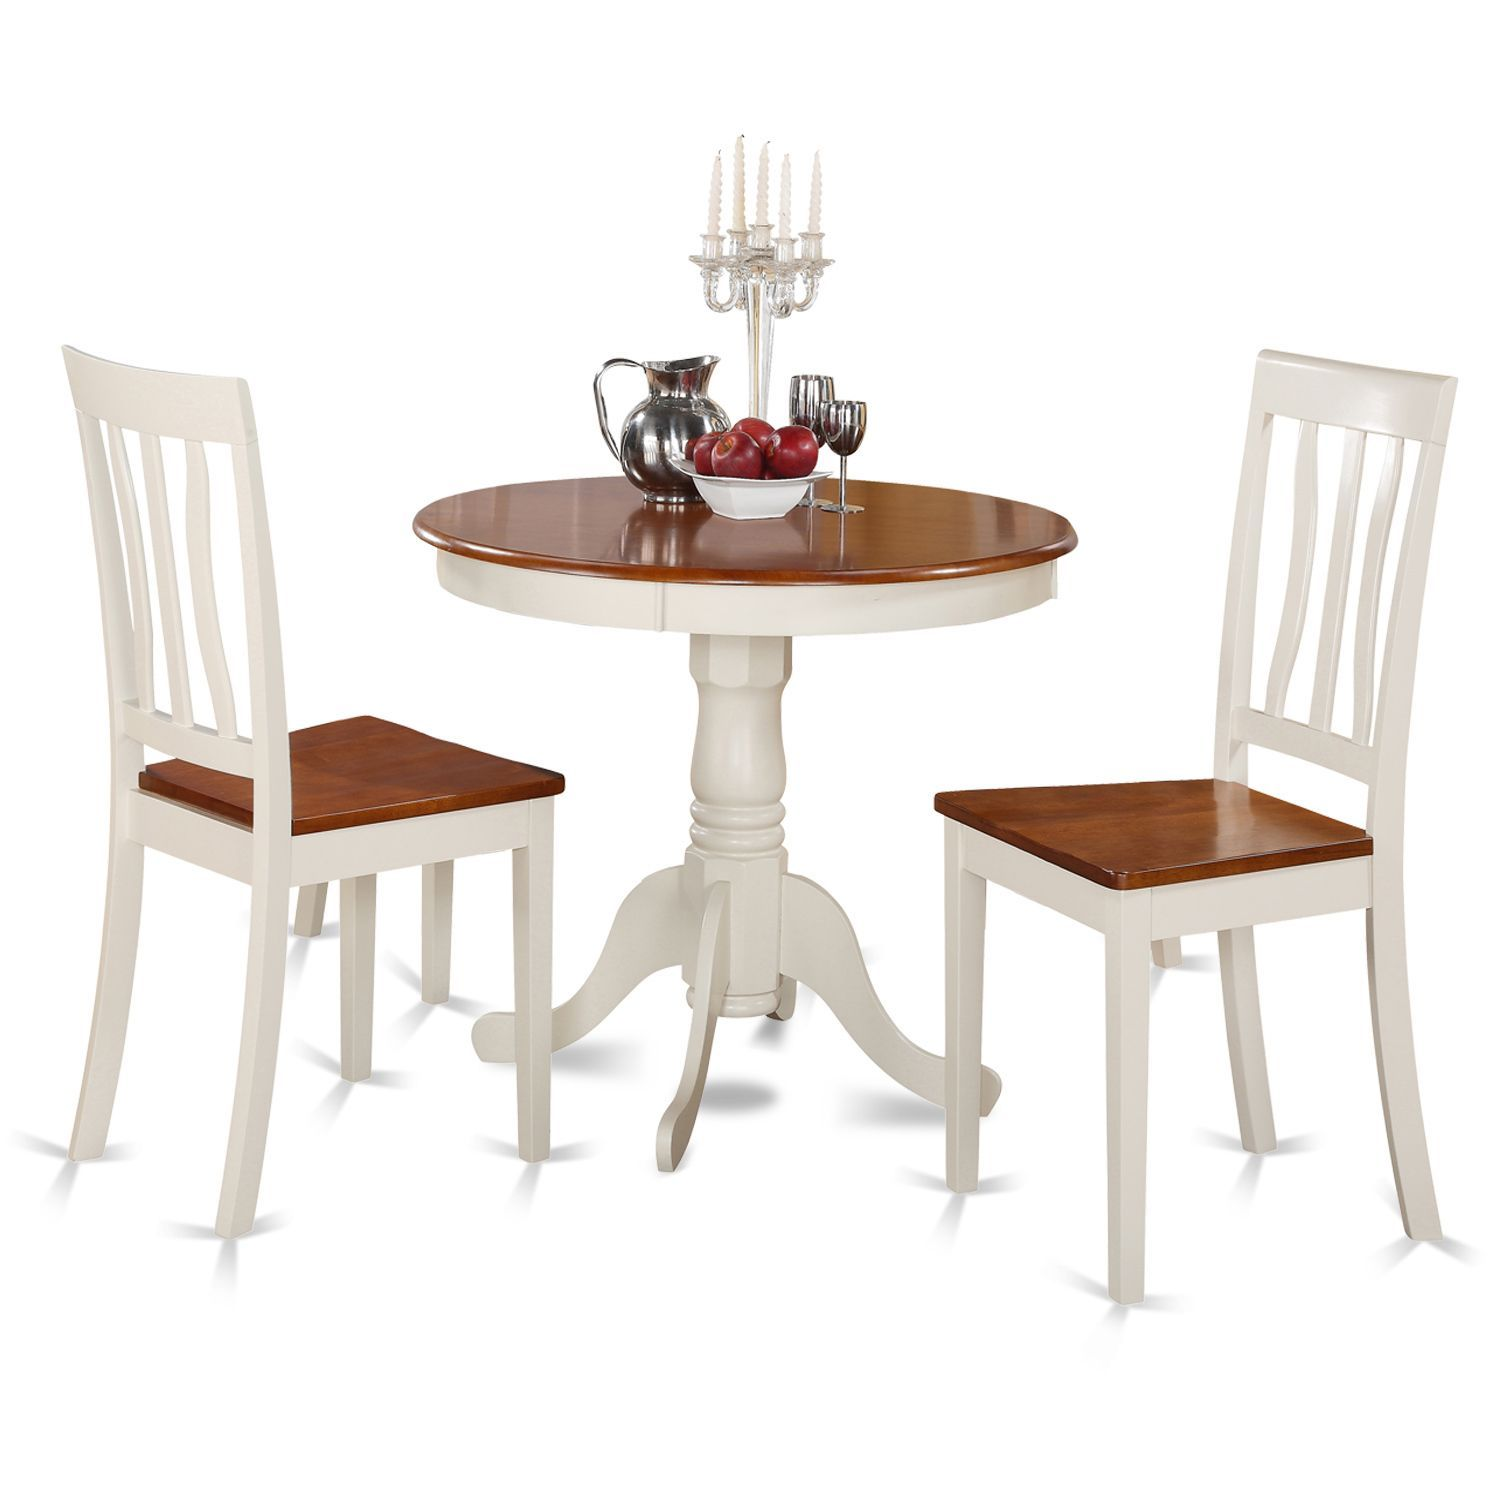 Buttermilk and Cherry Kitchen Table and Two Chair 3-piece Dining Set ...